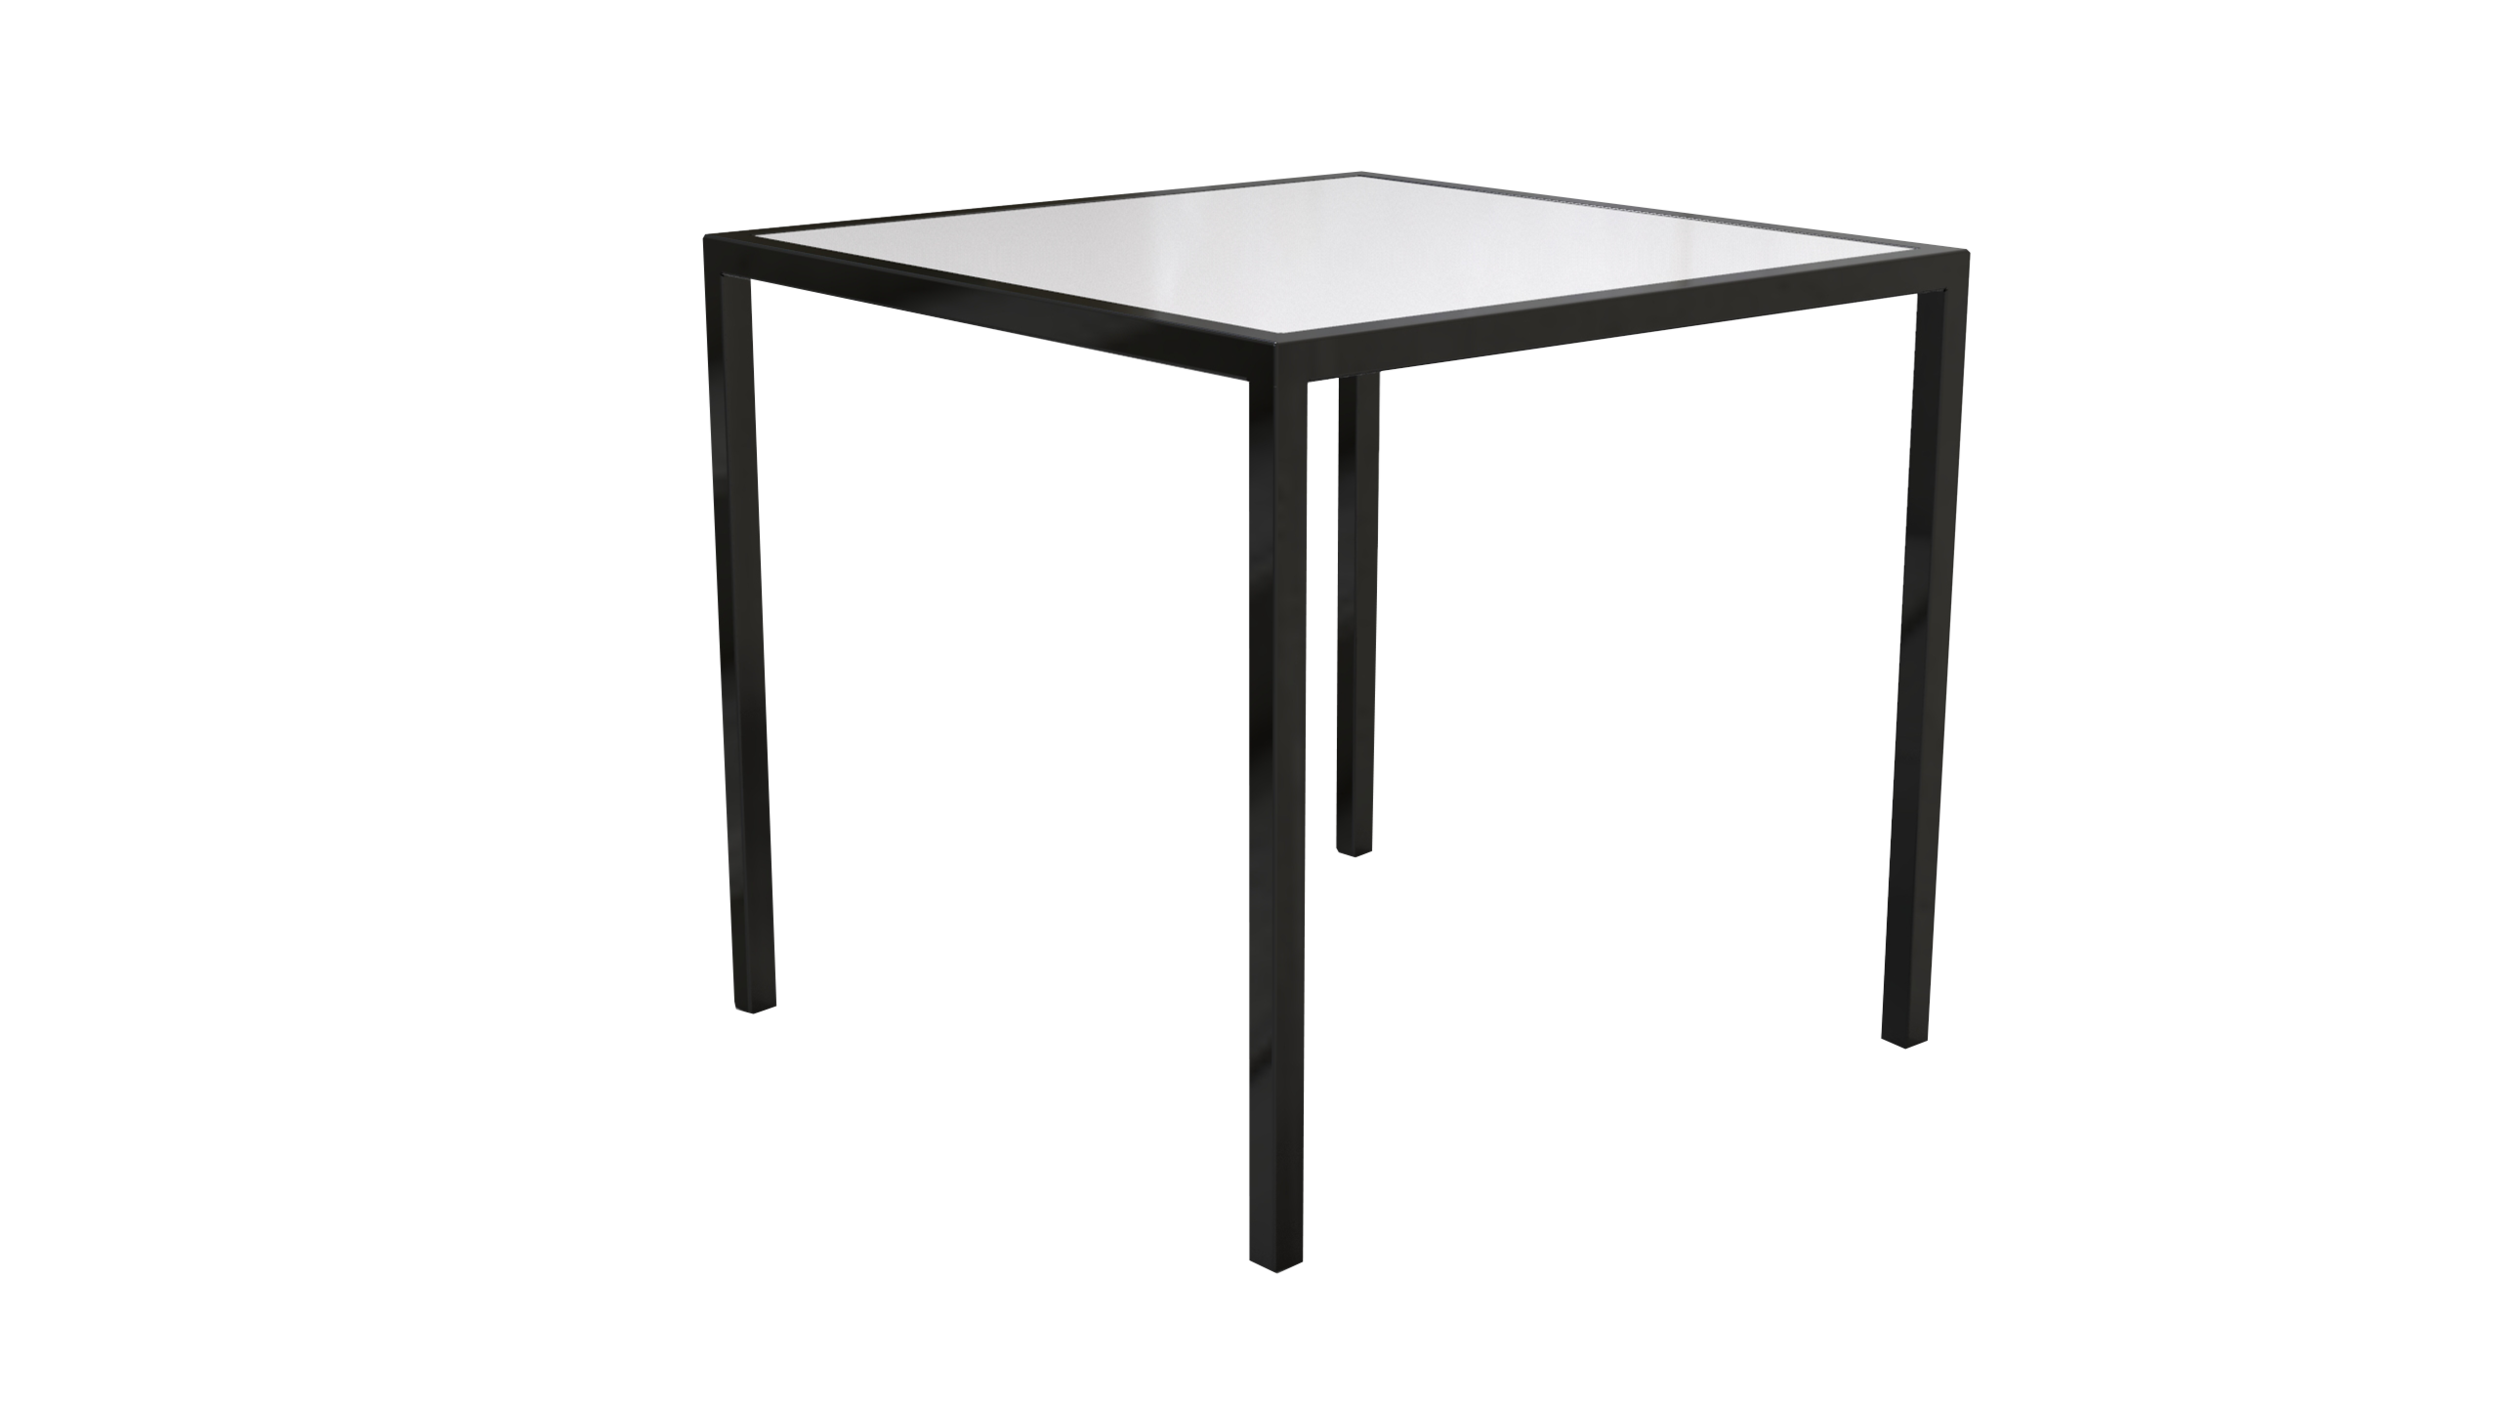 Square Table no background.png